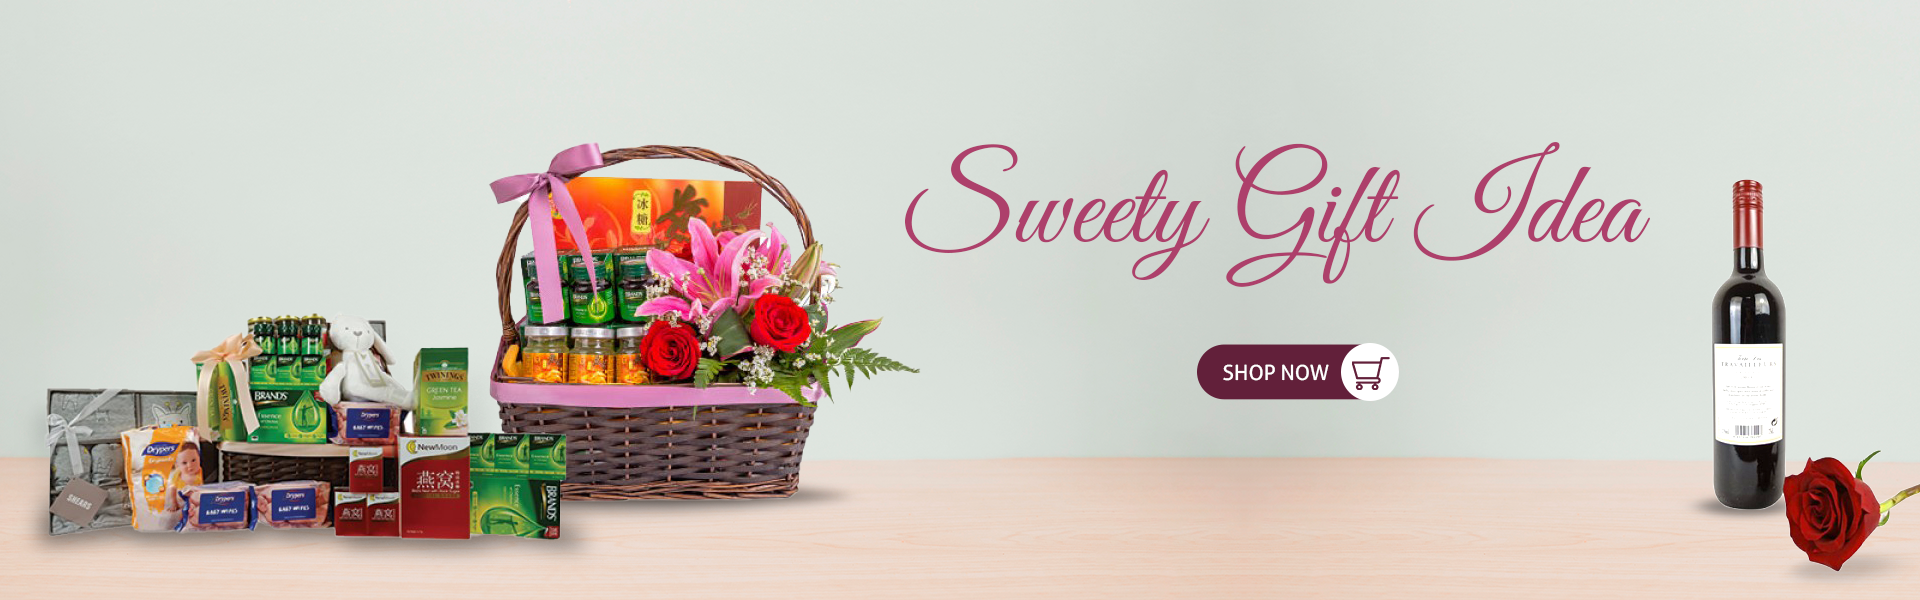 Sweety Gift Idea Hamper Baskets